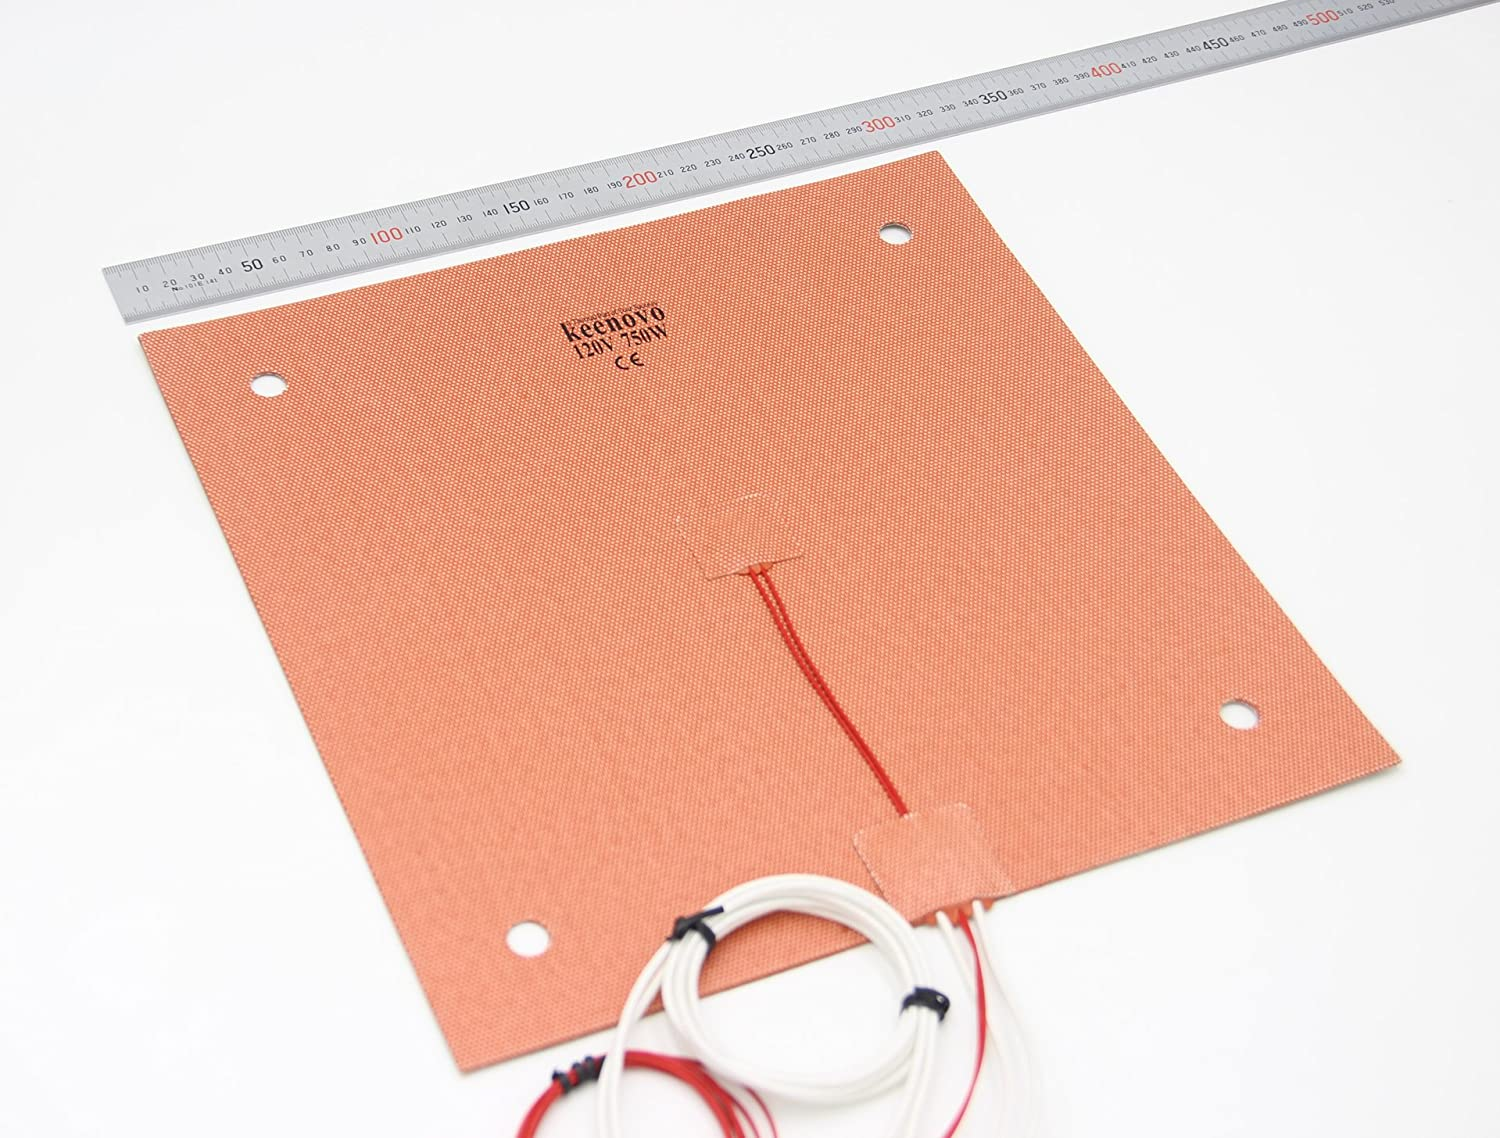 KEENOVO Silicone Heater 310x310mm for Creality CR-10 3D Printer Bed w/Screw Holes (120V)